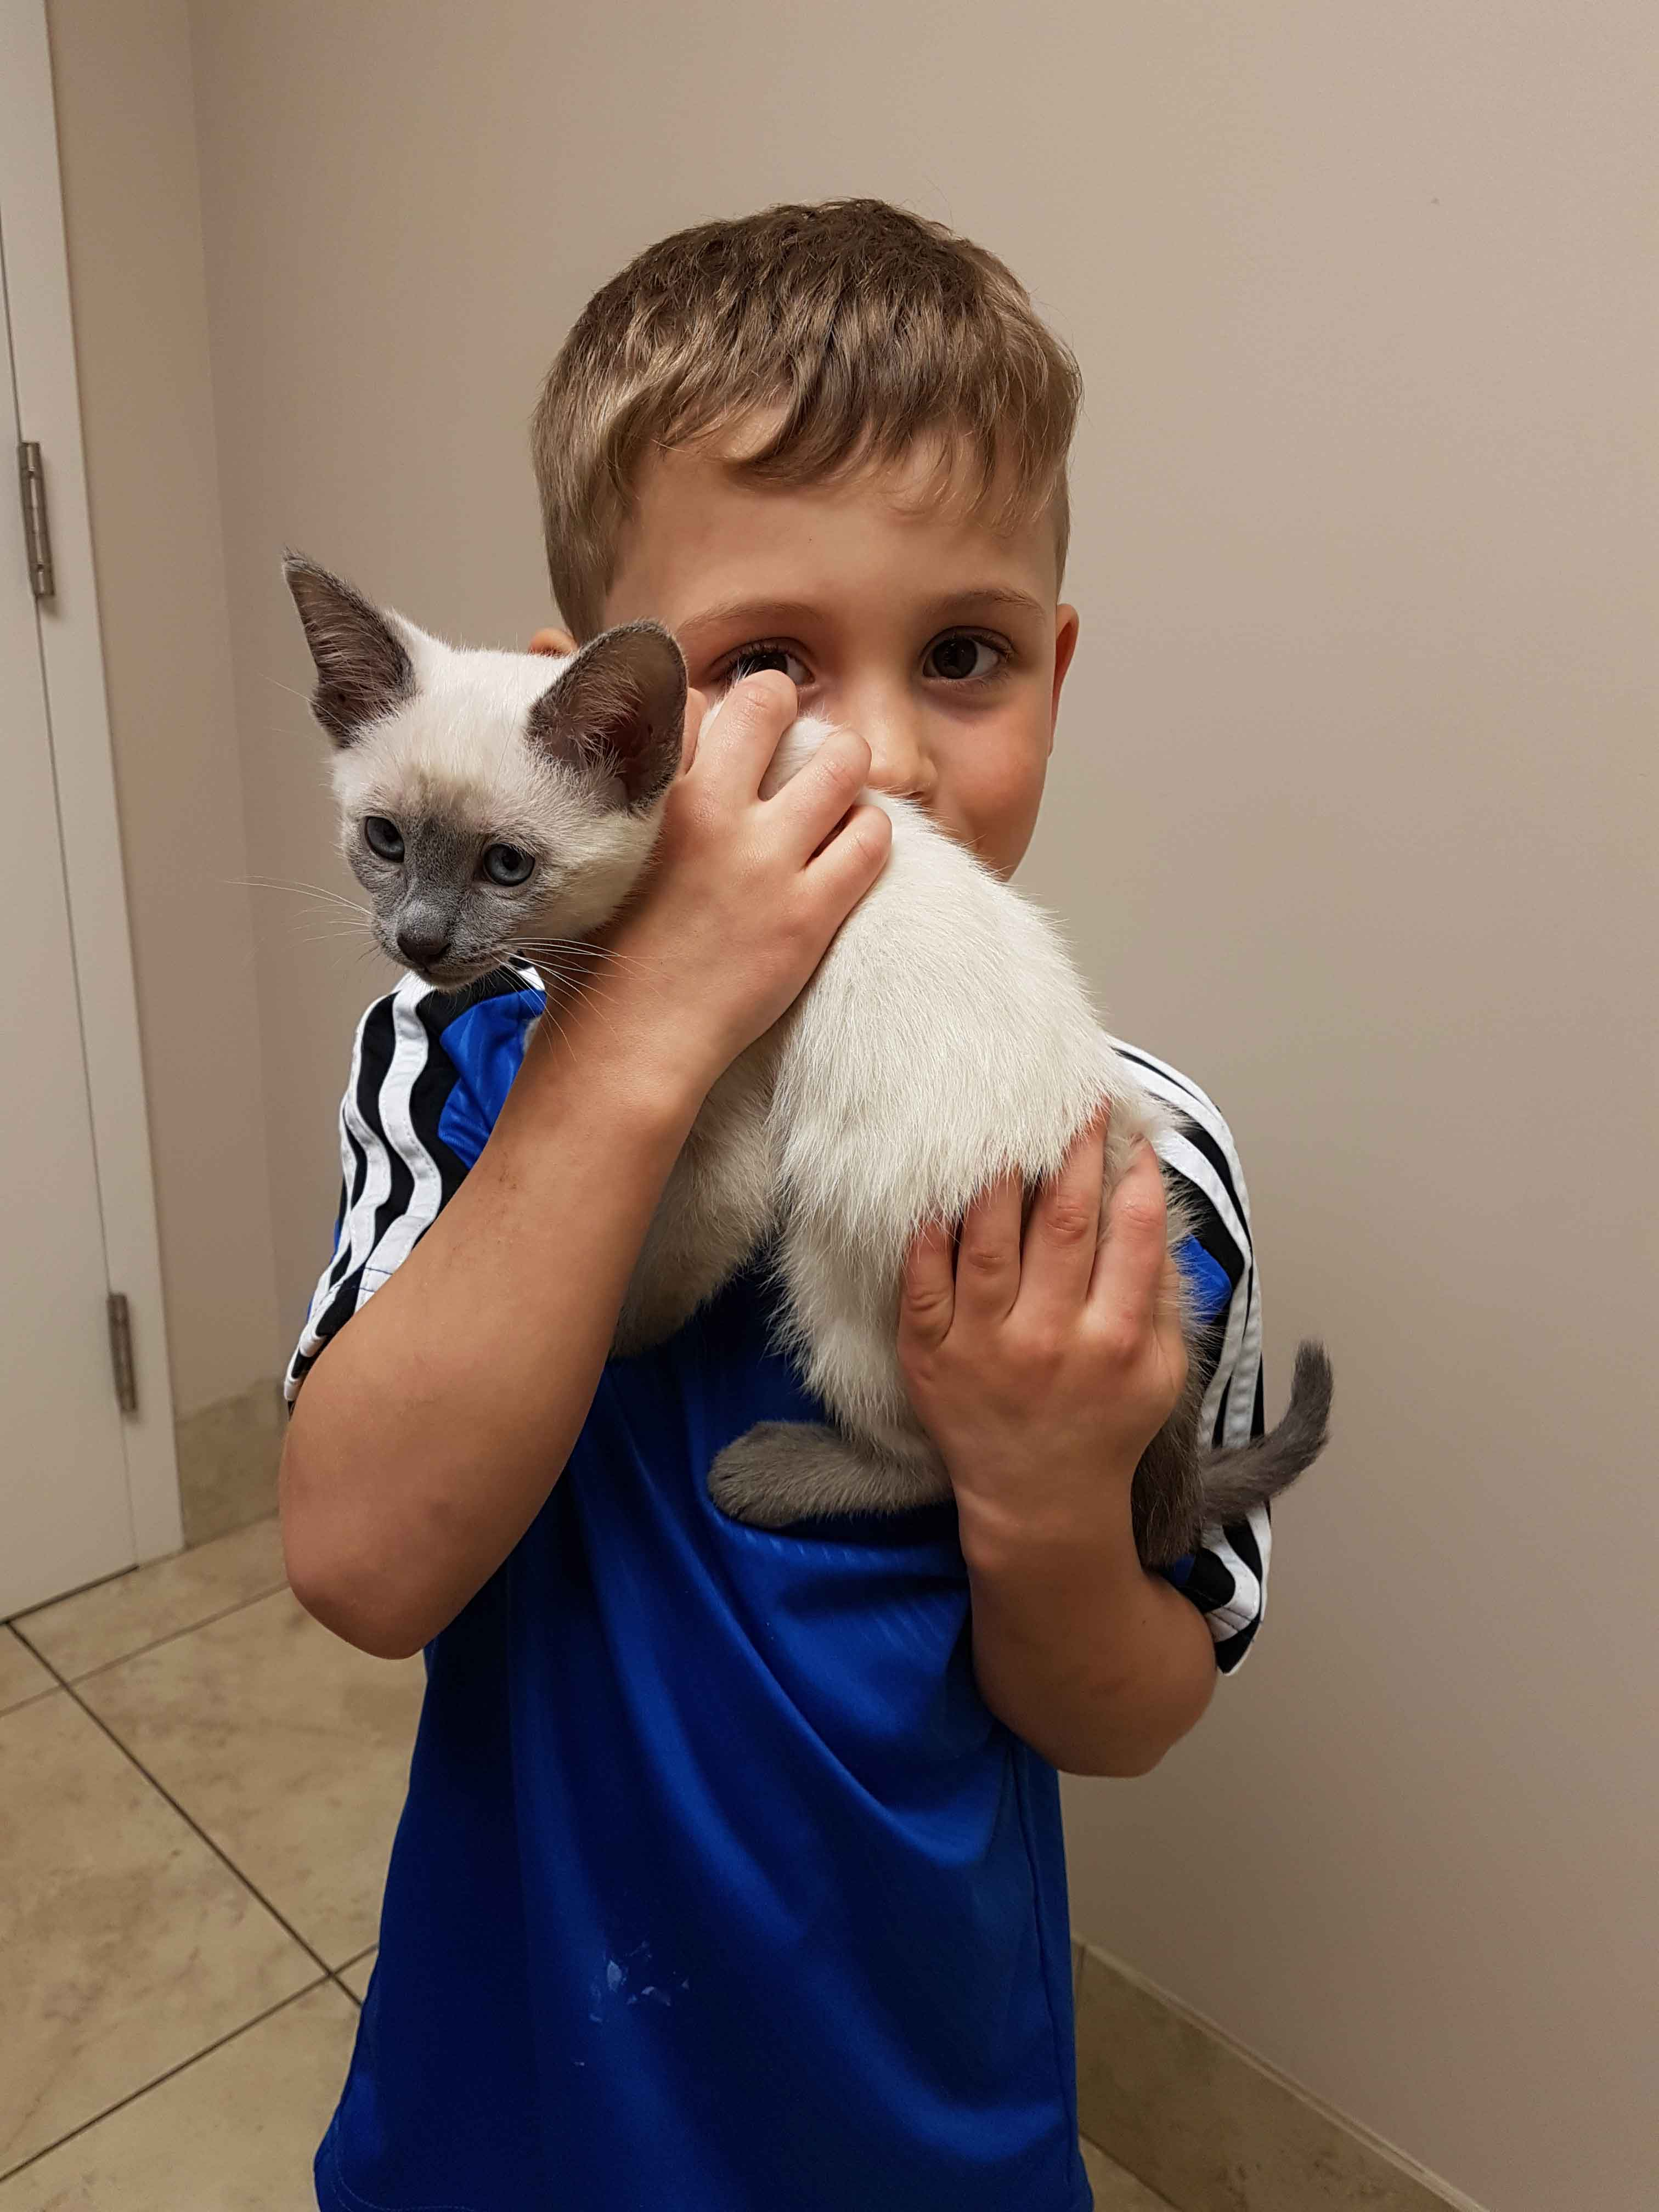 kid with cat